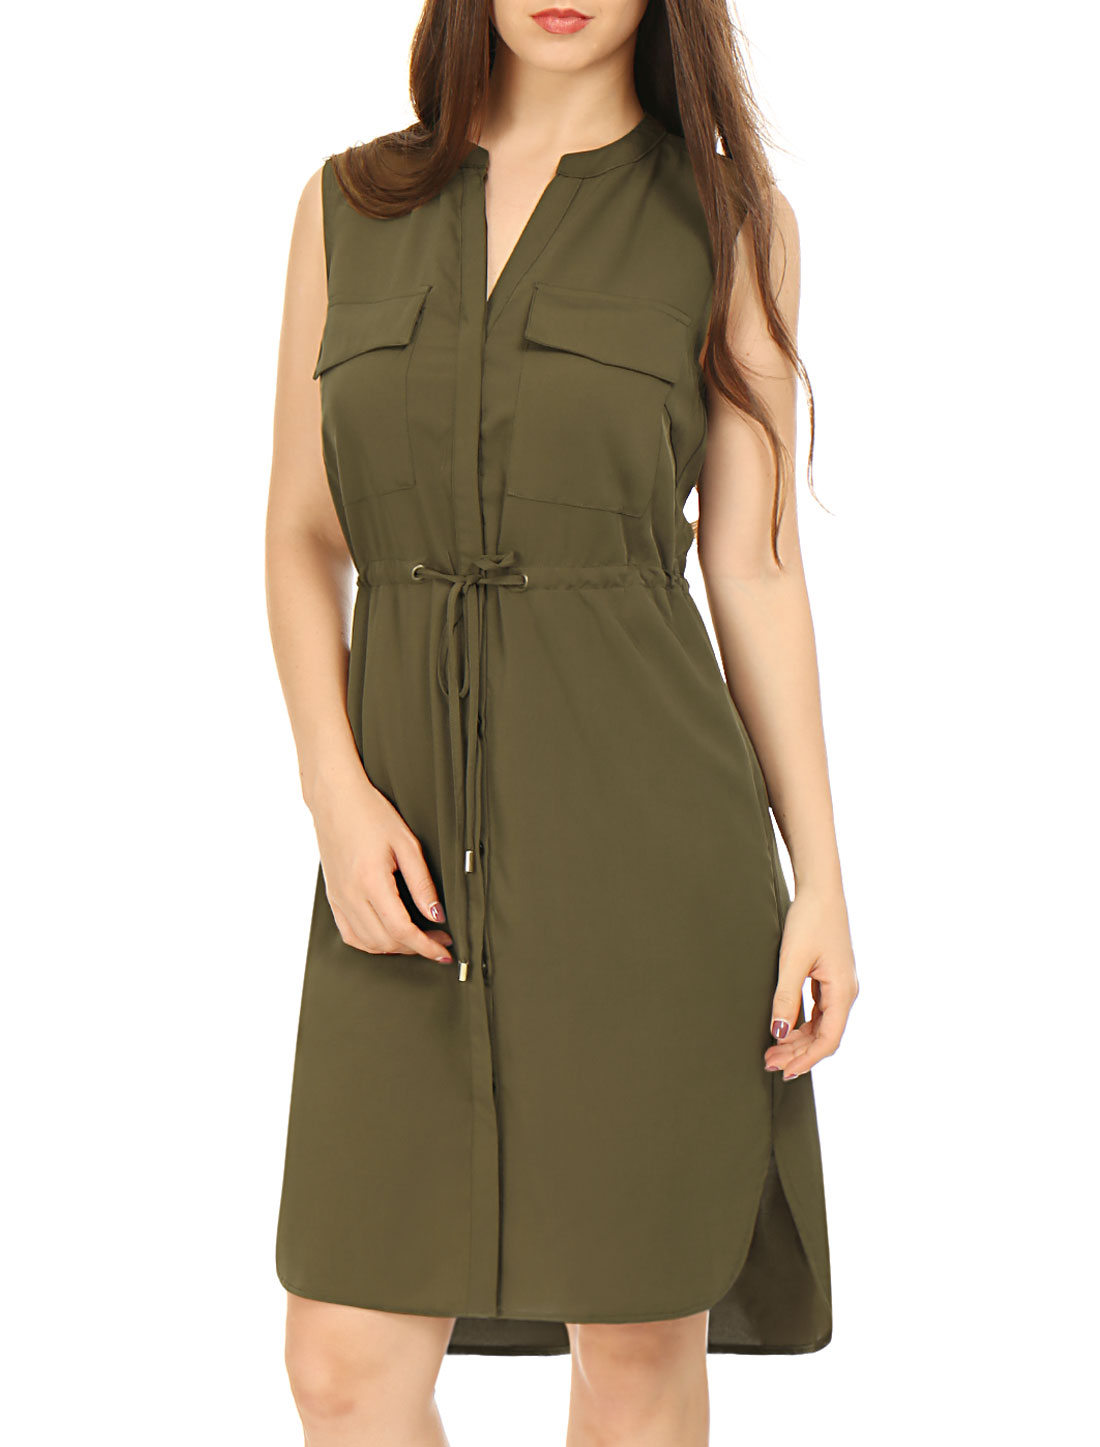 Allegra K Woman Single Breasted Drawstring Sleeveless Dress Green XS